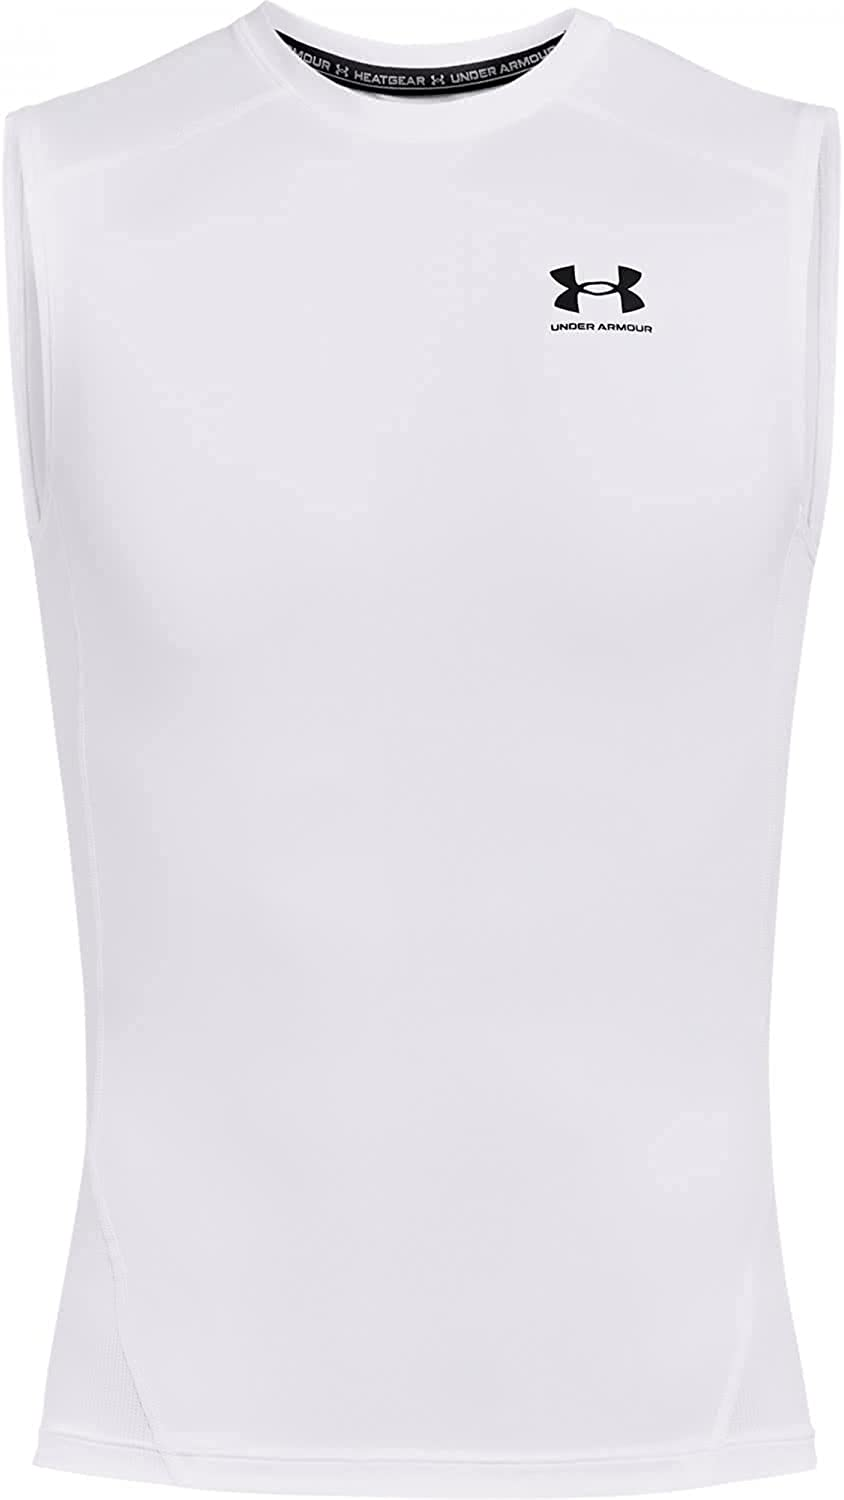 Under Armour OFFicial store Men's HeatGear OFFicial store Sleeveless T-Shirt Compression